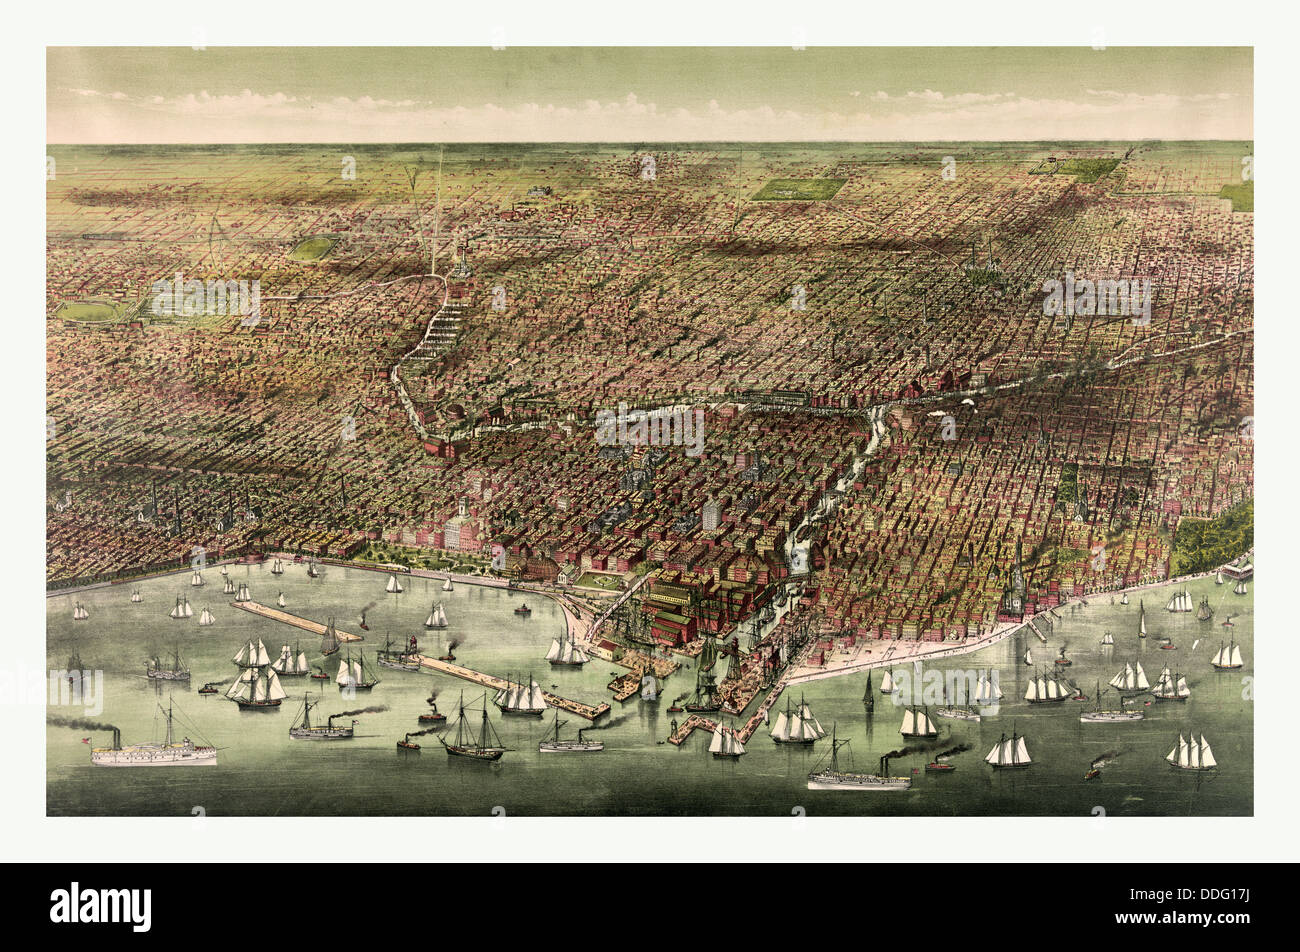 The city of Chicago by Currier & Ives circa 1892, US, USA, America - Stock Image